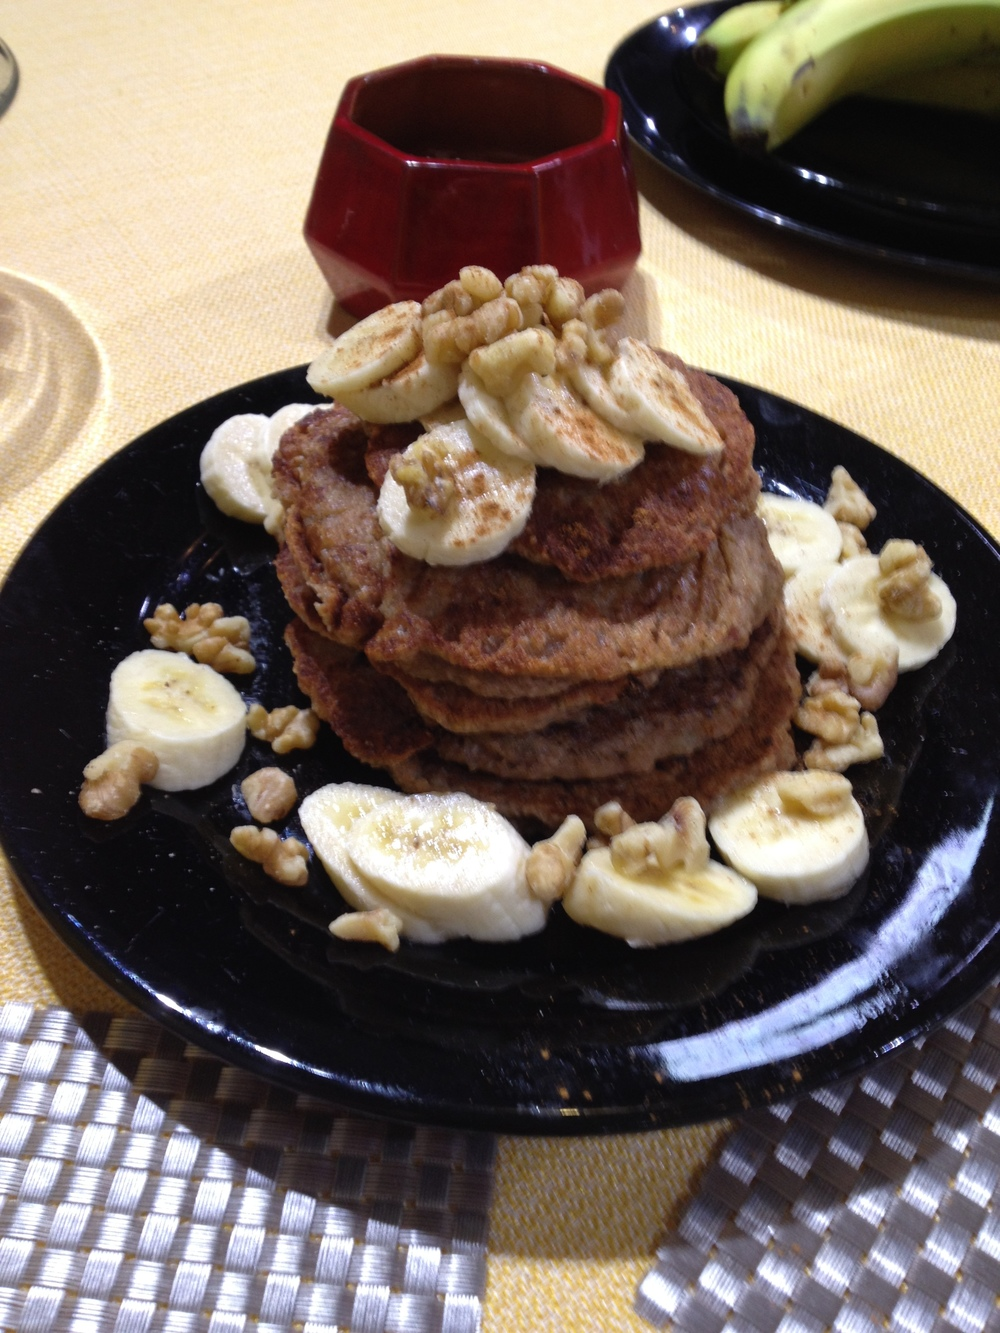 Banana Bliss Pancakesfrom Eat More Plants